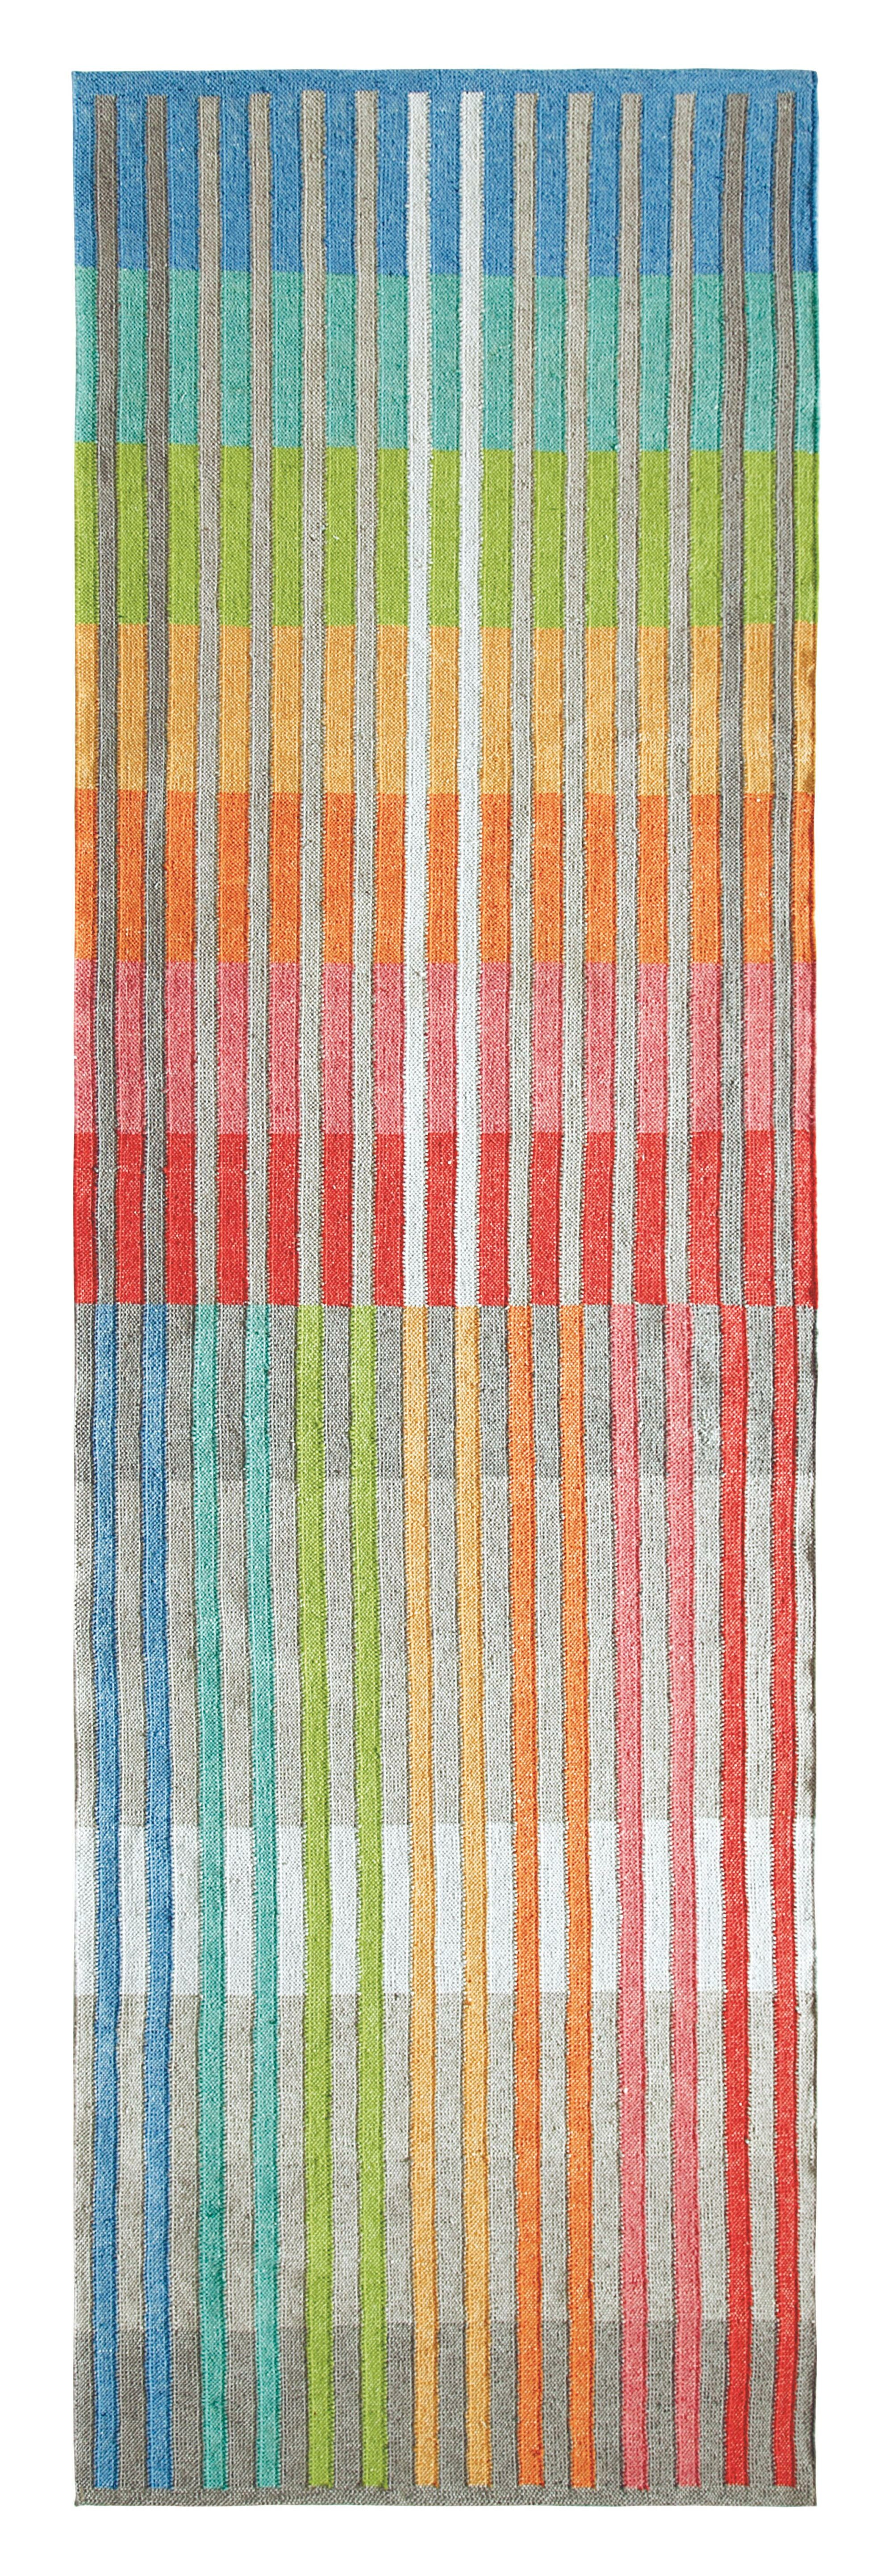 Chromatic Plaid Hand Woven Red/Blue Indoor/Outdoor Area Rug Rug Size: Runner 2'6